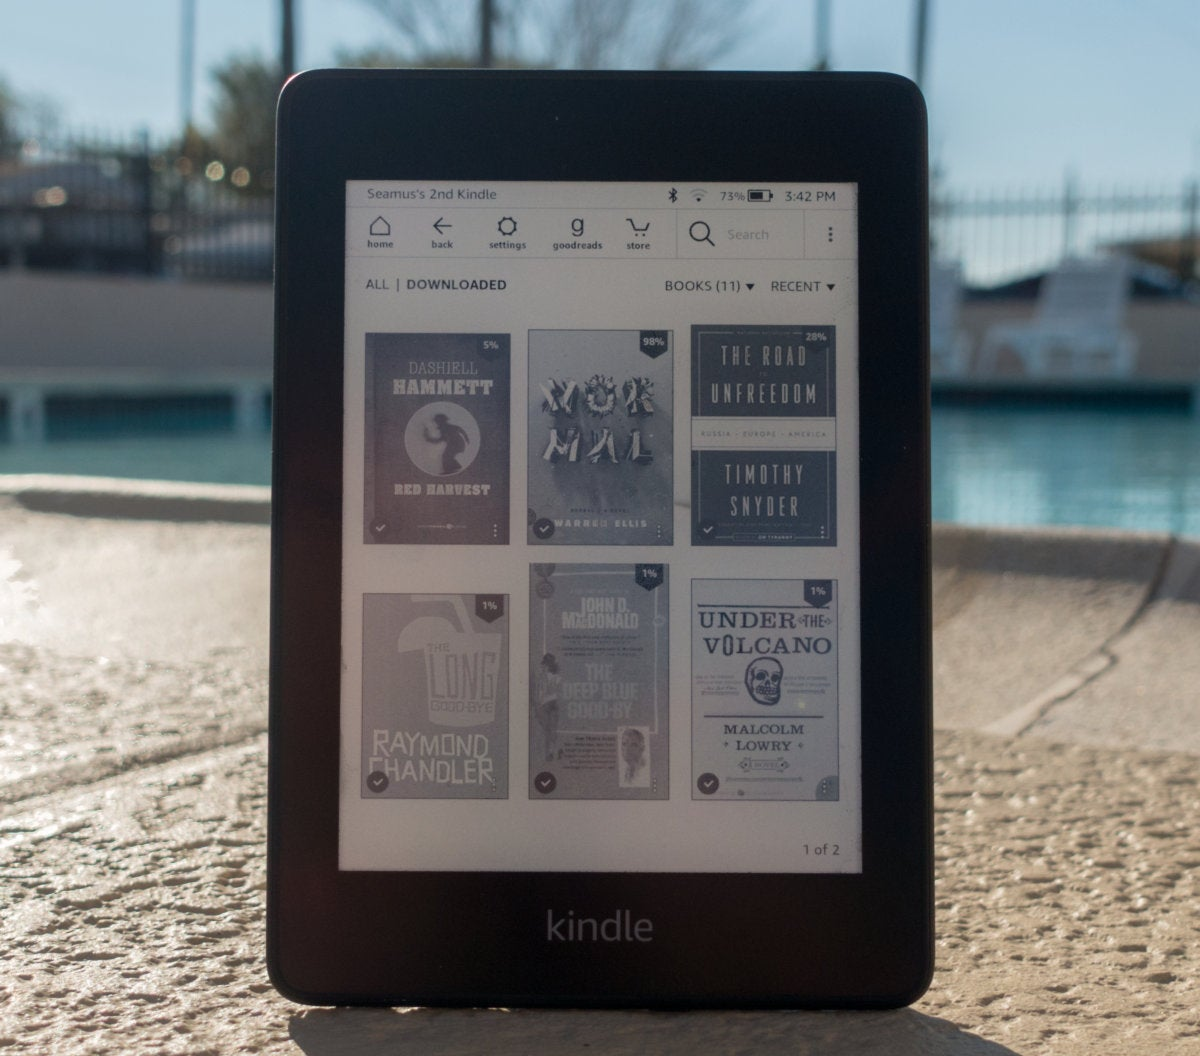 Amazon Kindle Amazon All New Kindle Paperwhite Review 2018 The Best Just Got